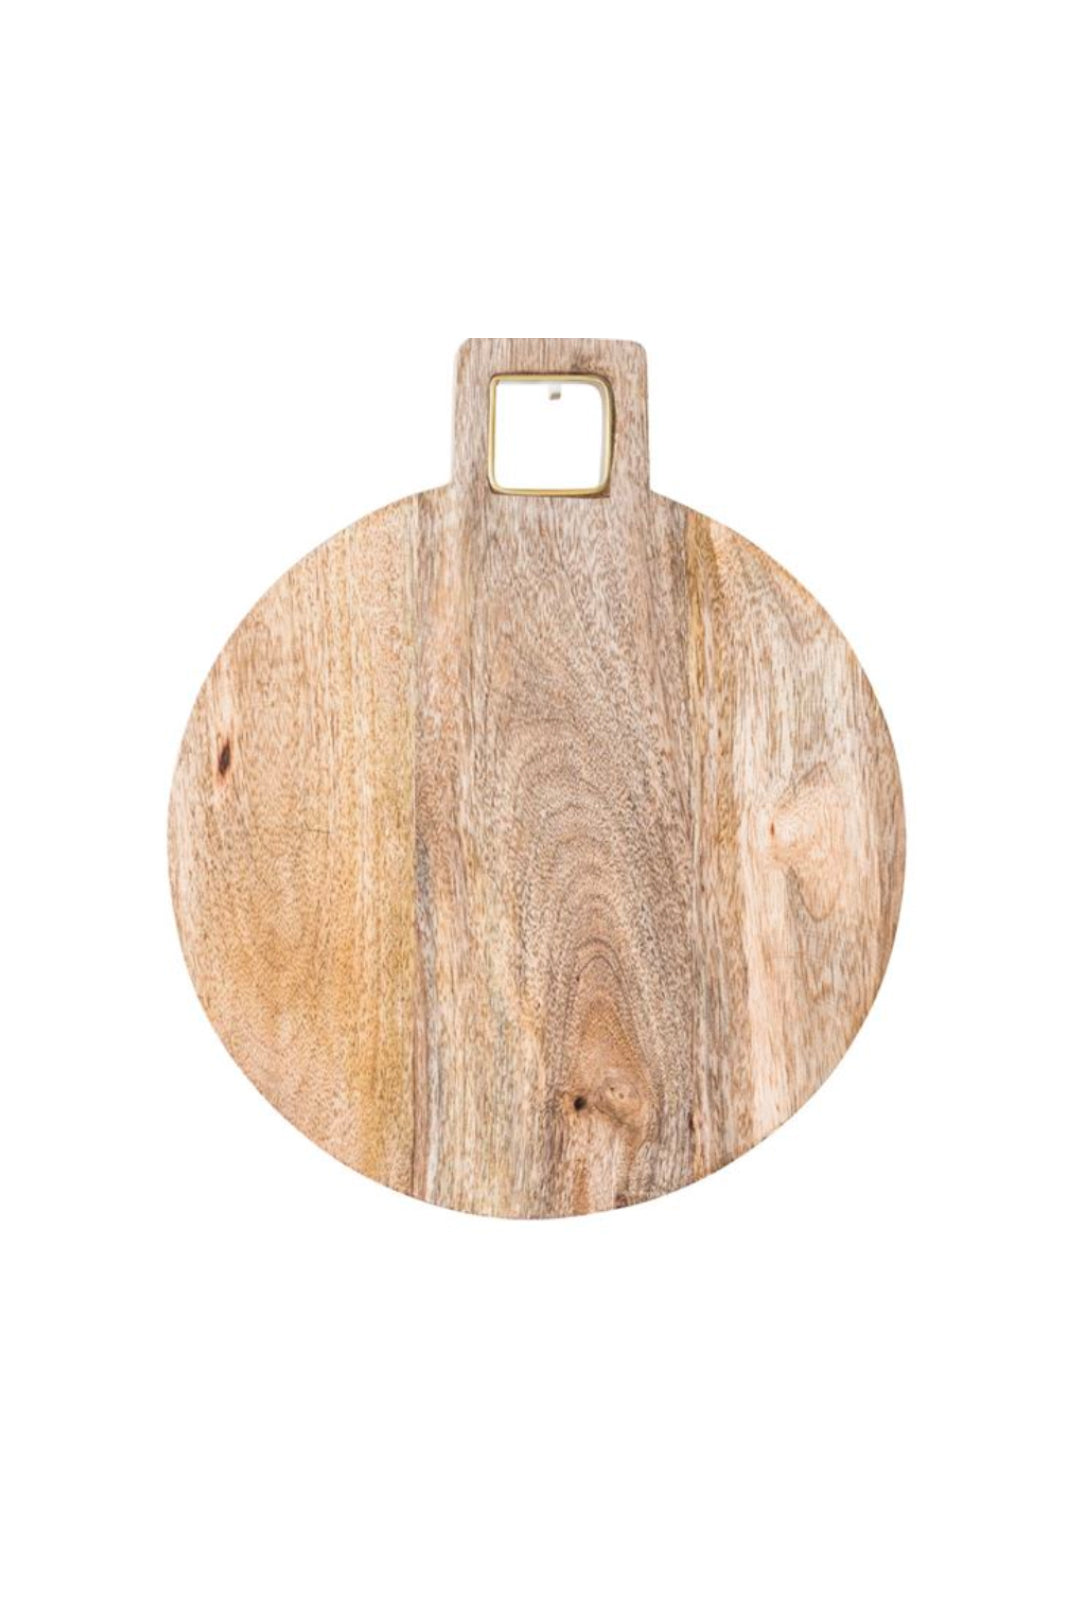 Mango Wood Cutting Board w/Brass Trim Handle